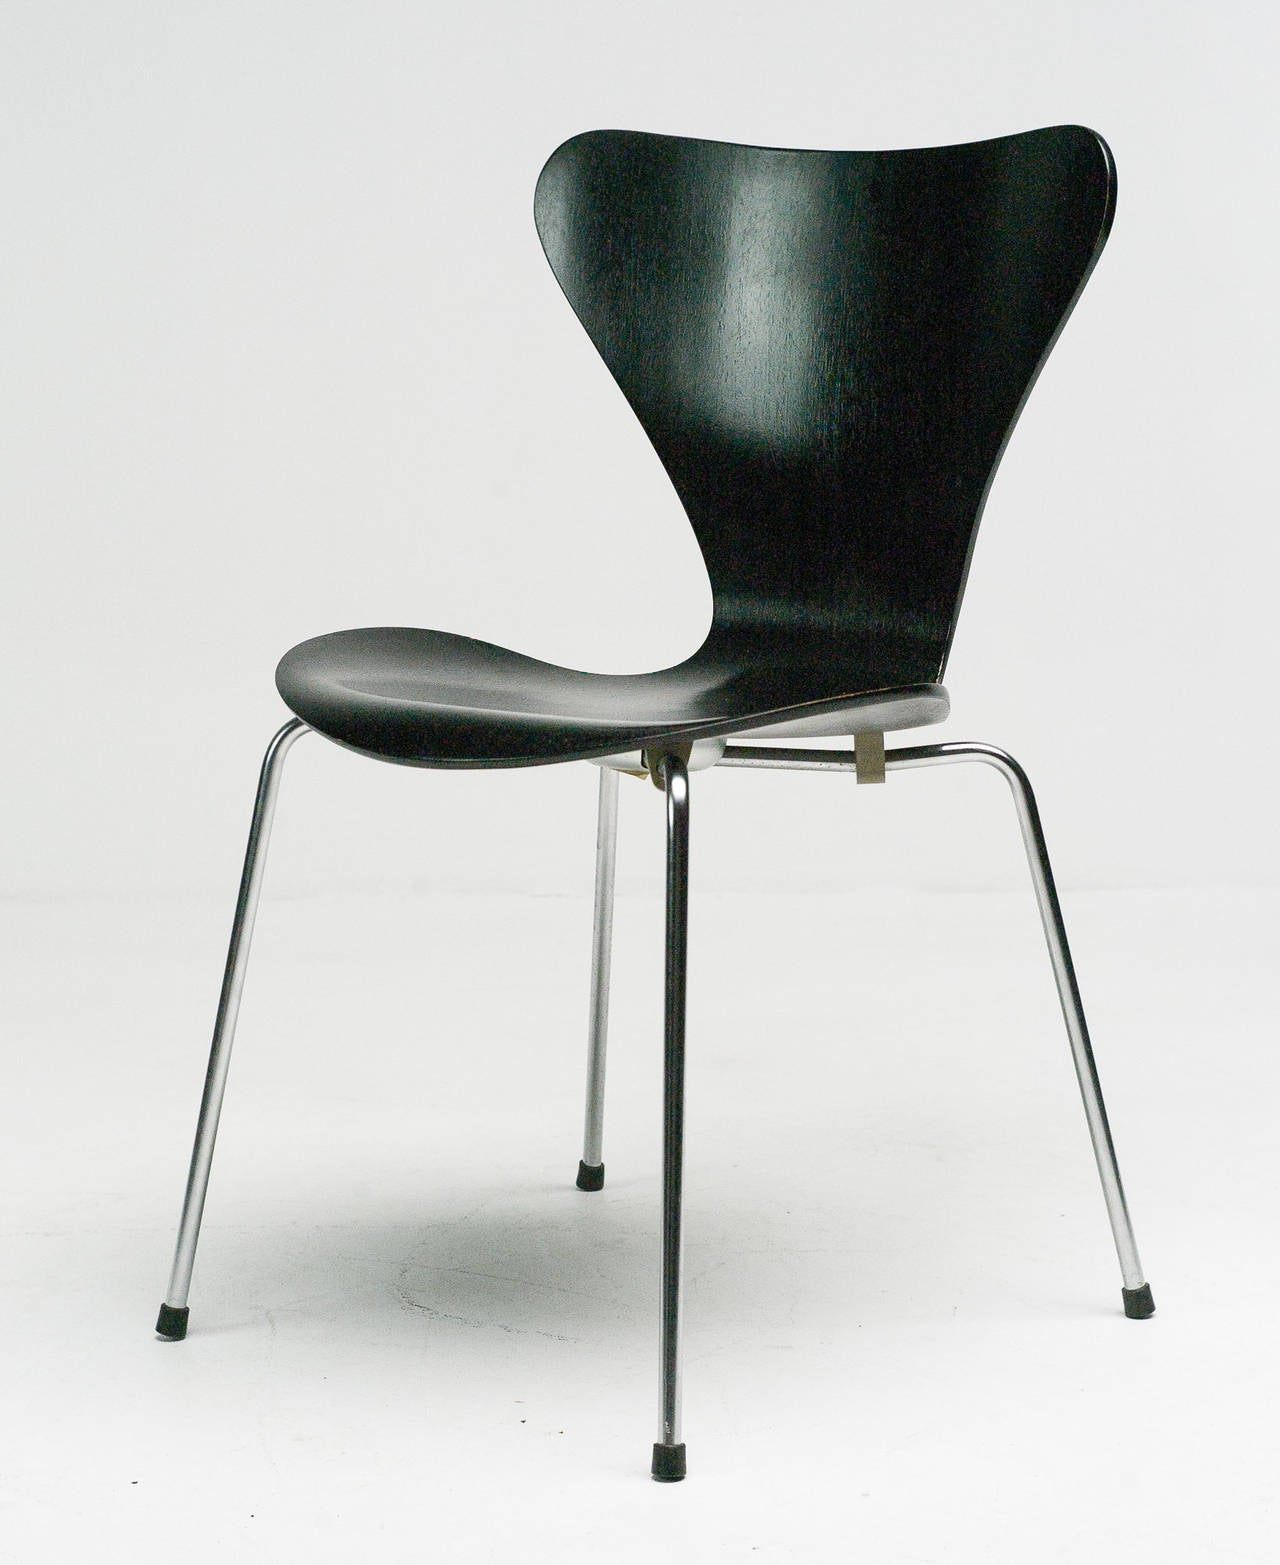 early seven series chairs arne jacobsen for fritz hansen. Black Bedroom Furniture Sets. Home Design Ideas